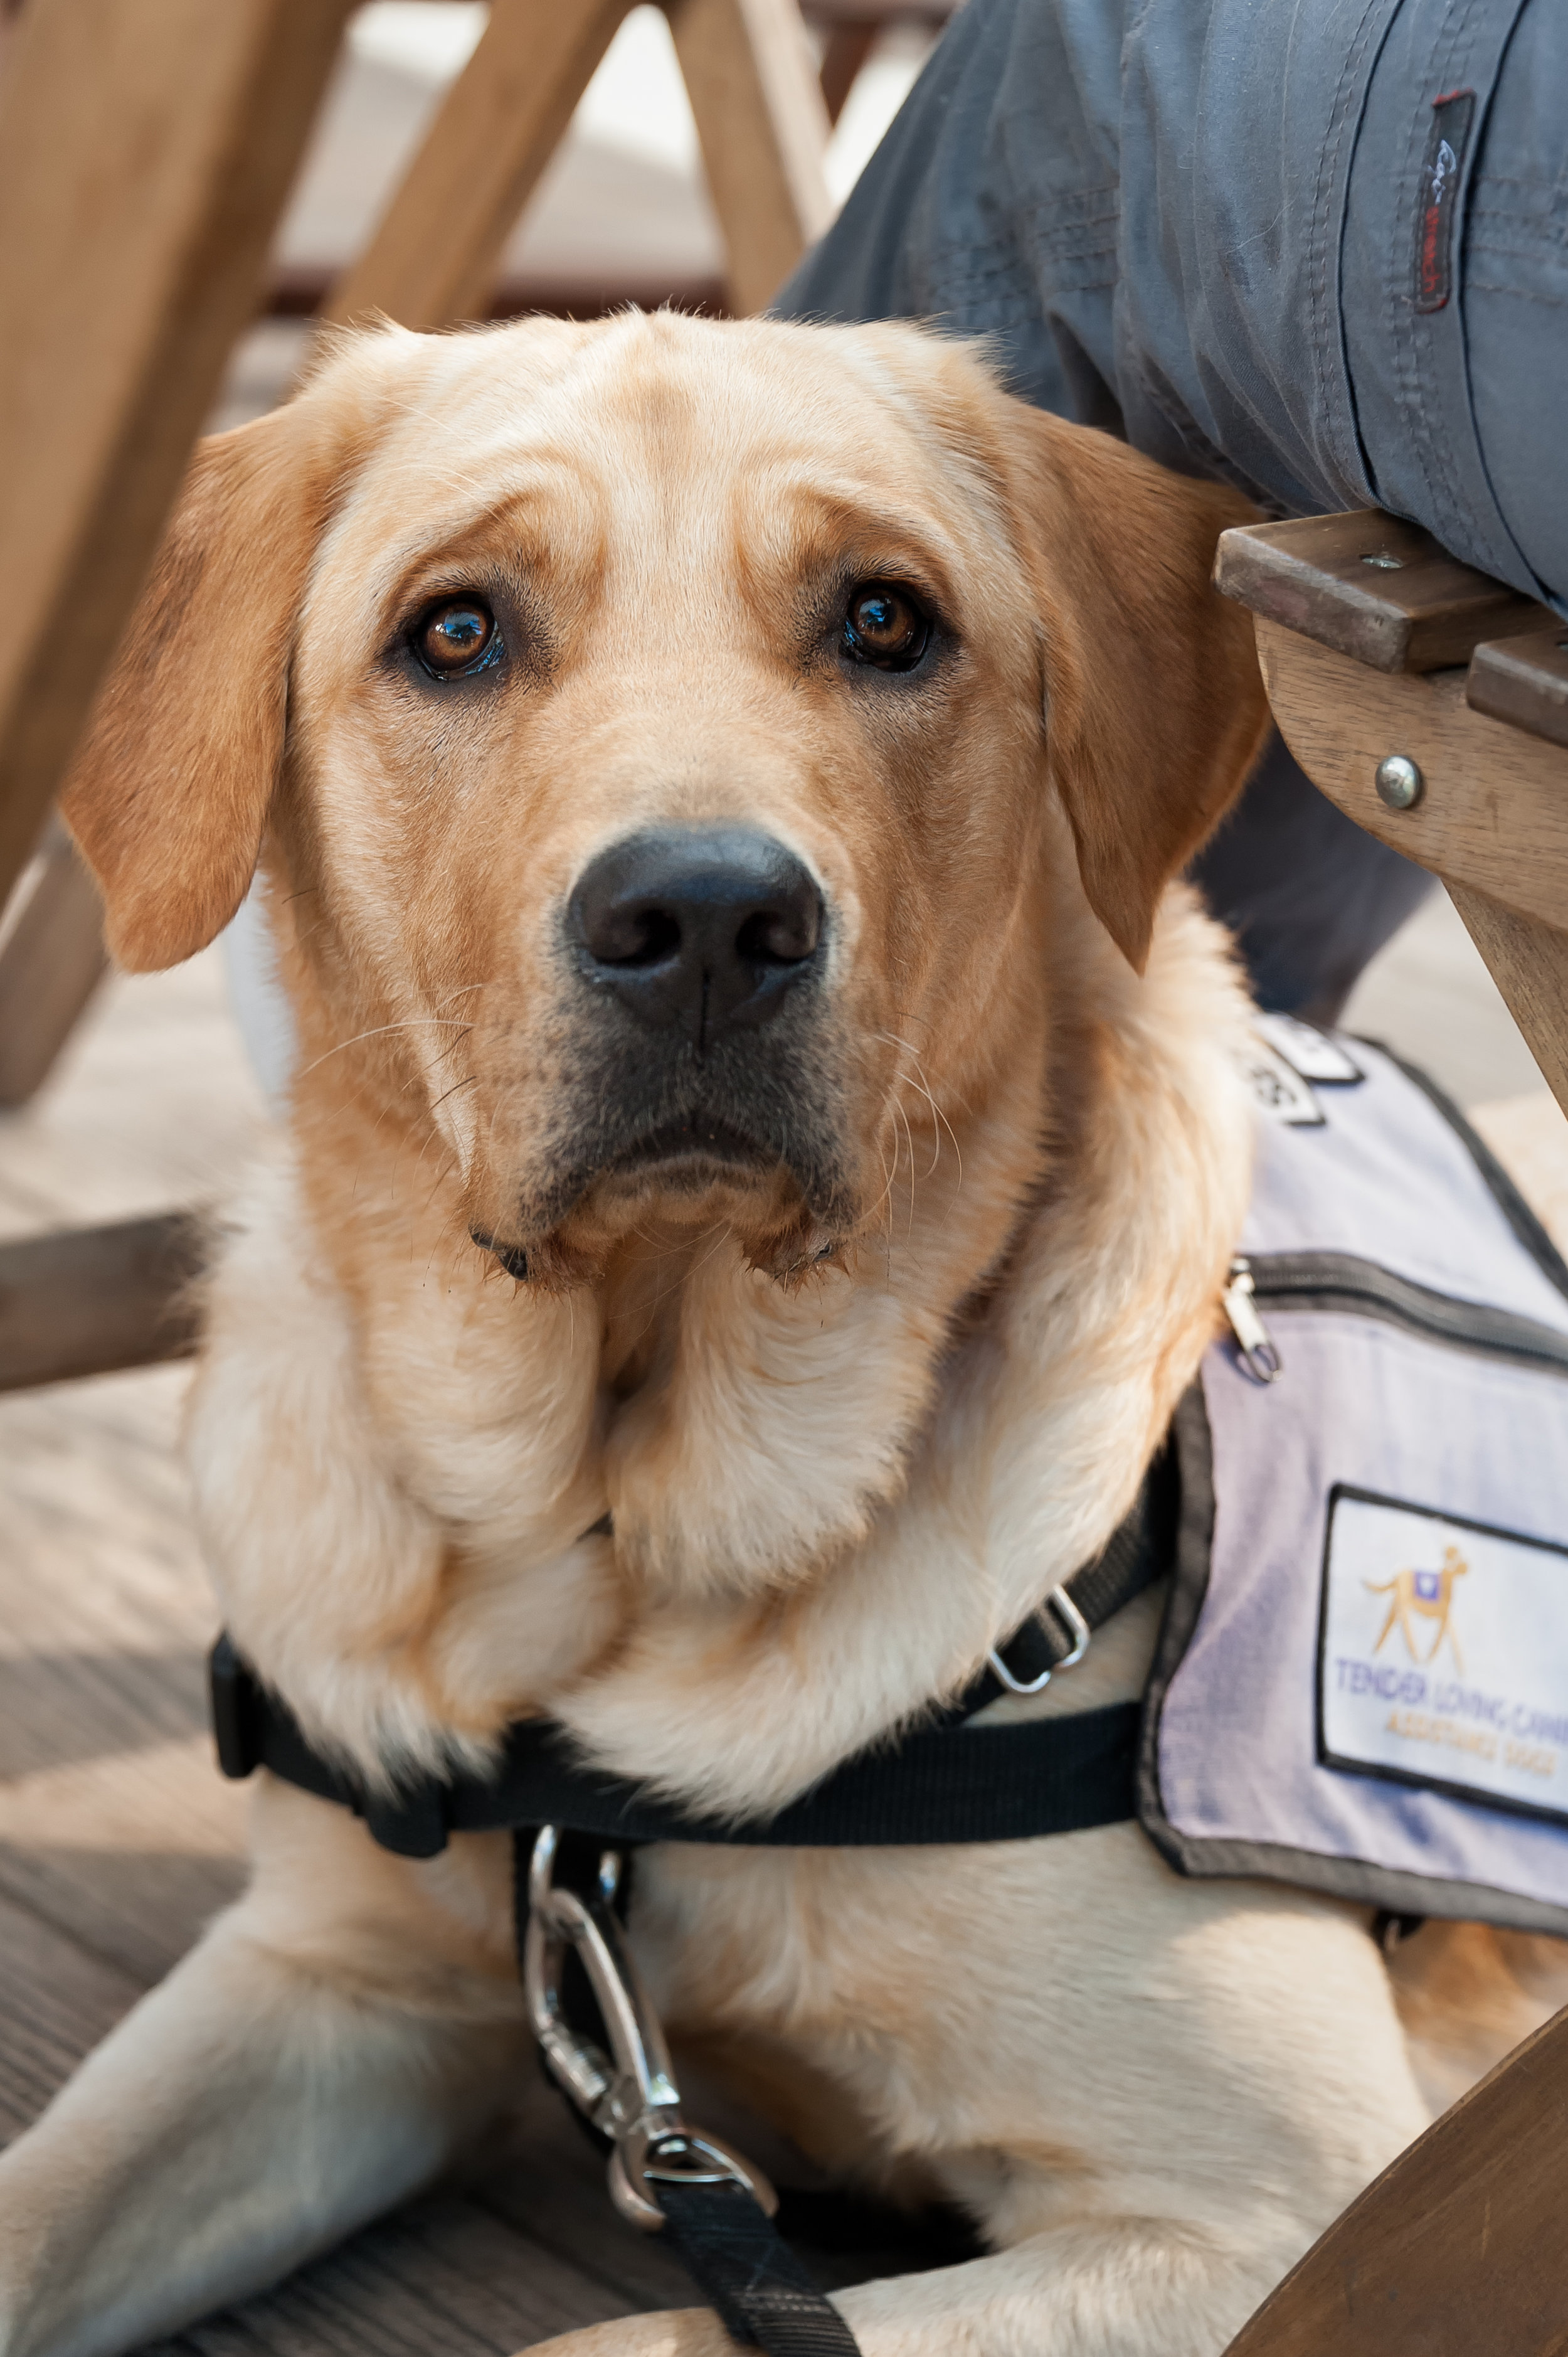 Retired Service Dog- What Happens When They Hang Up Their